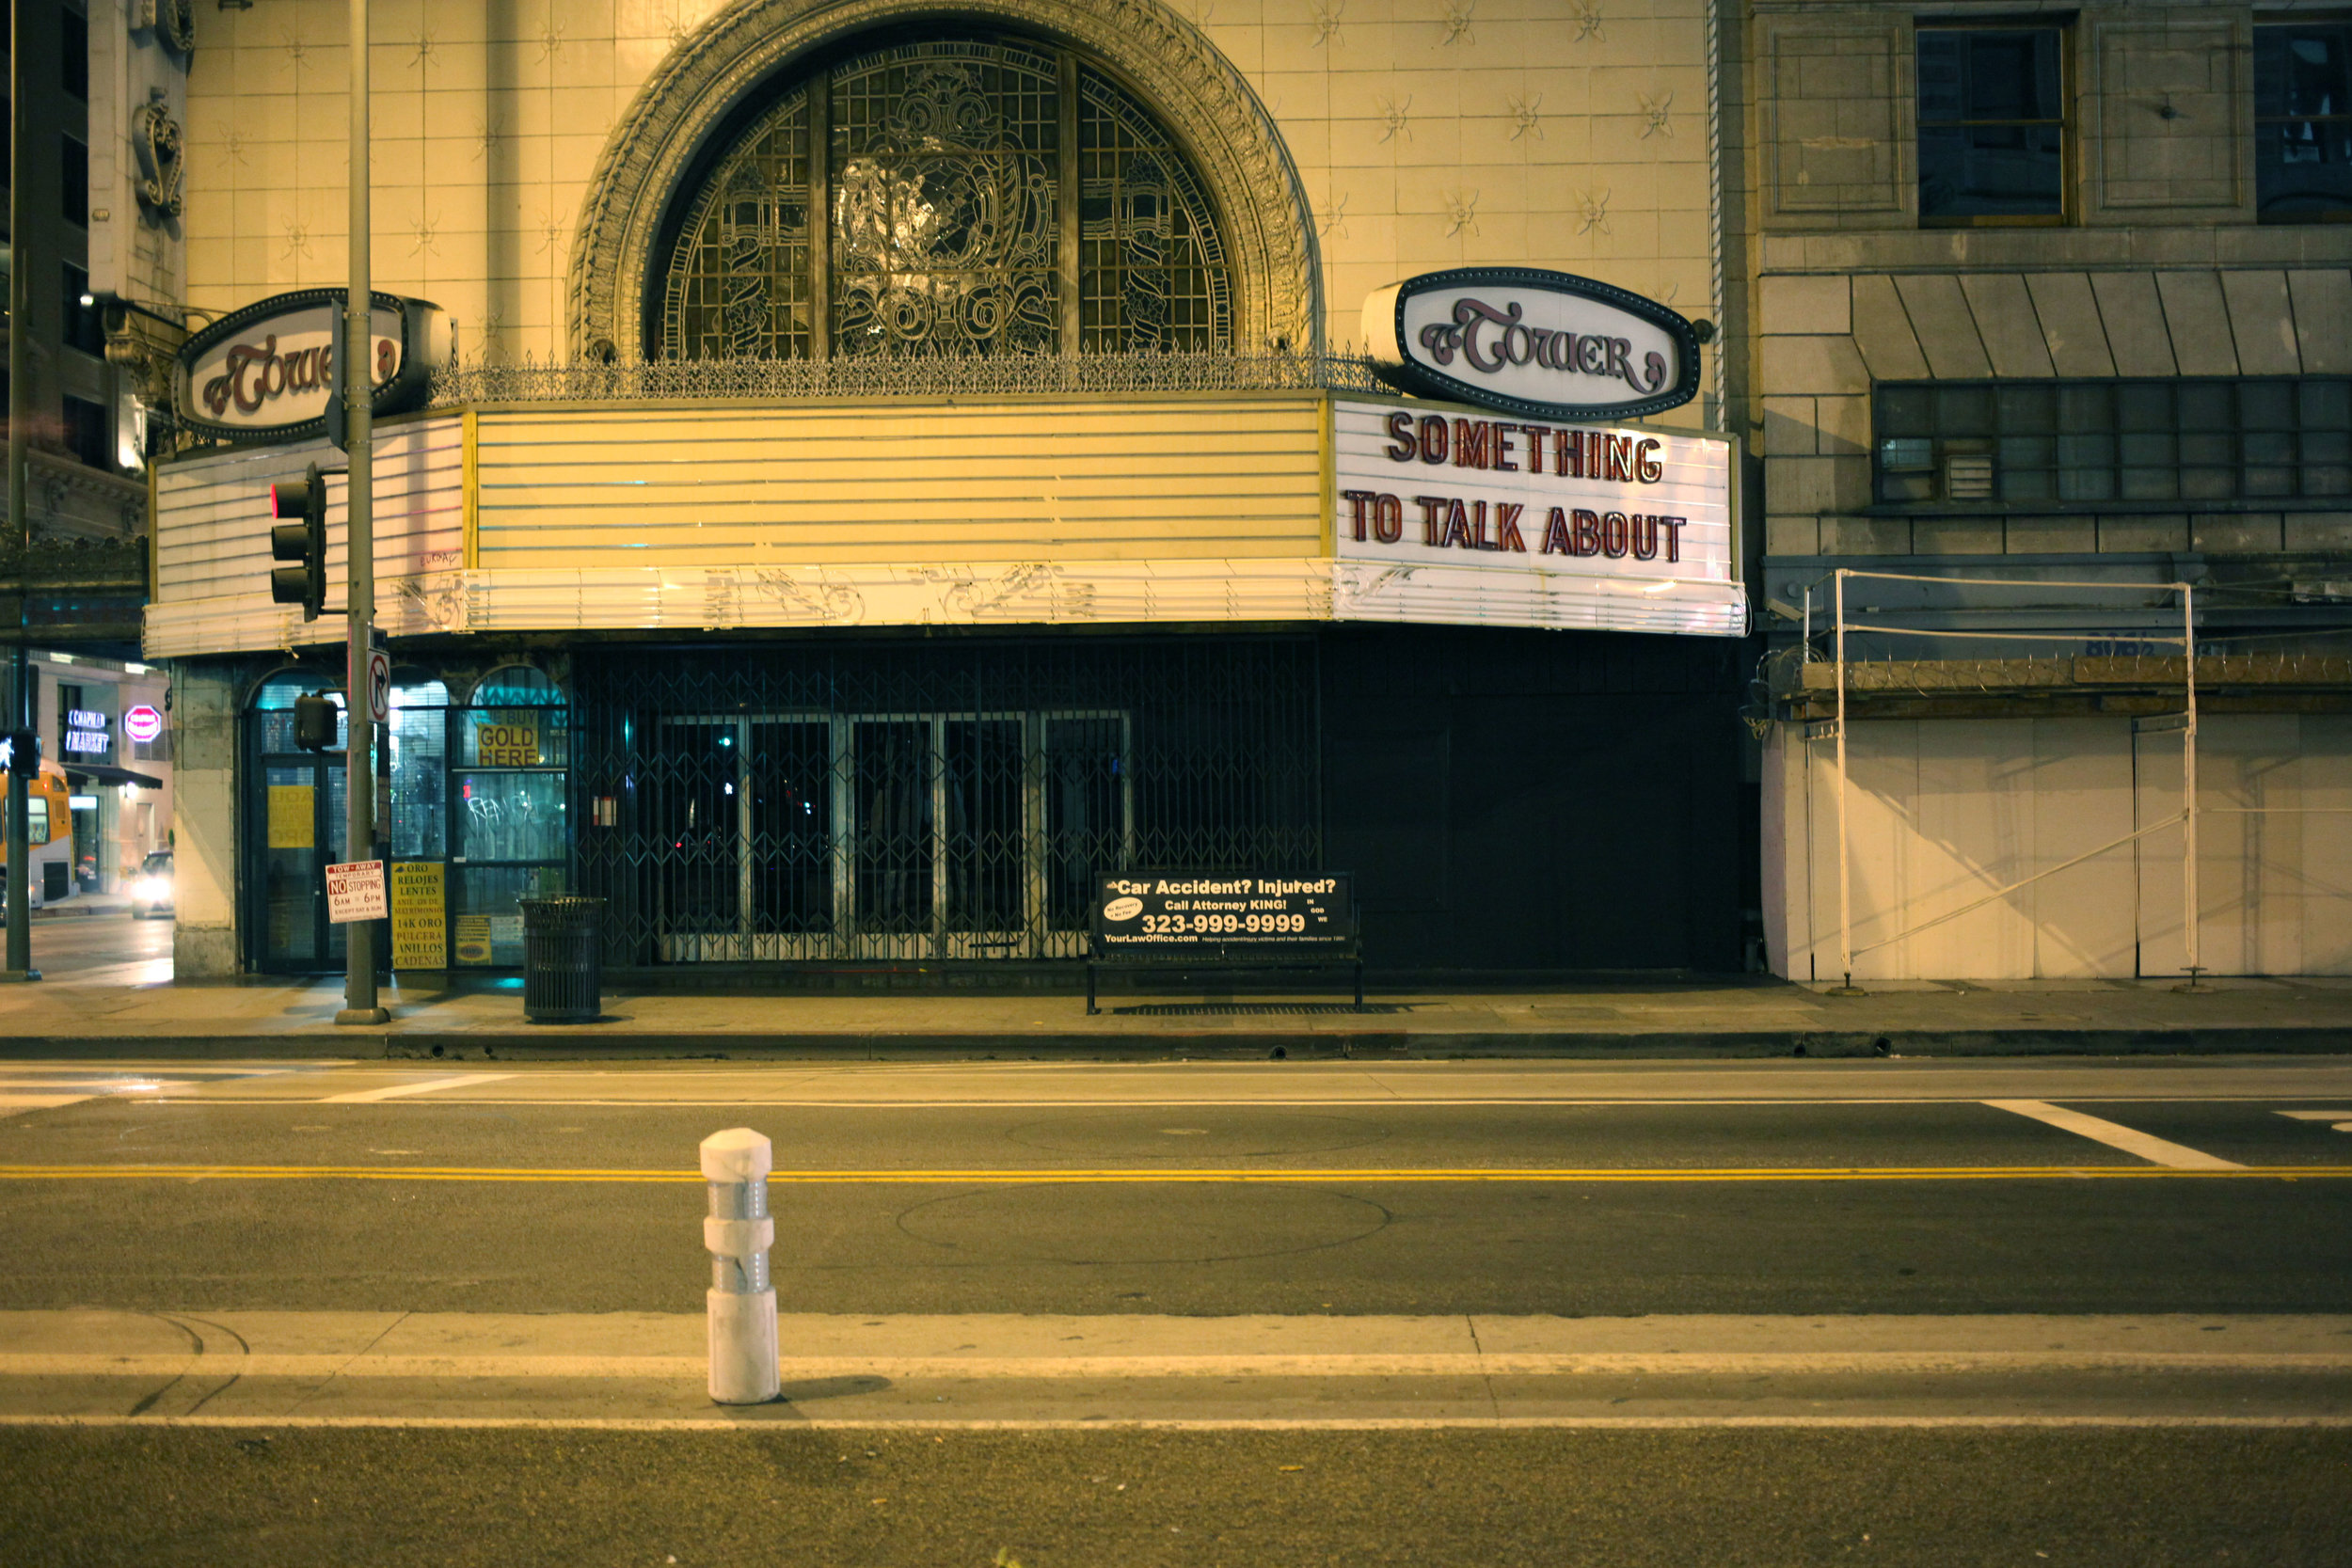 Tower Theatre (something to talk about), Los Angeles, 2015